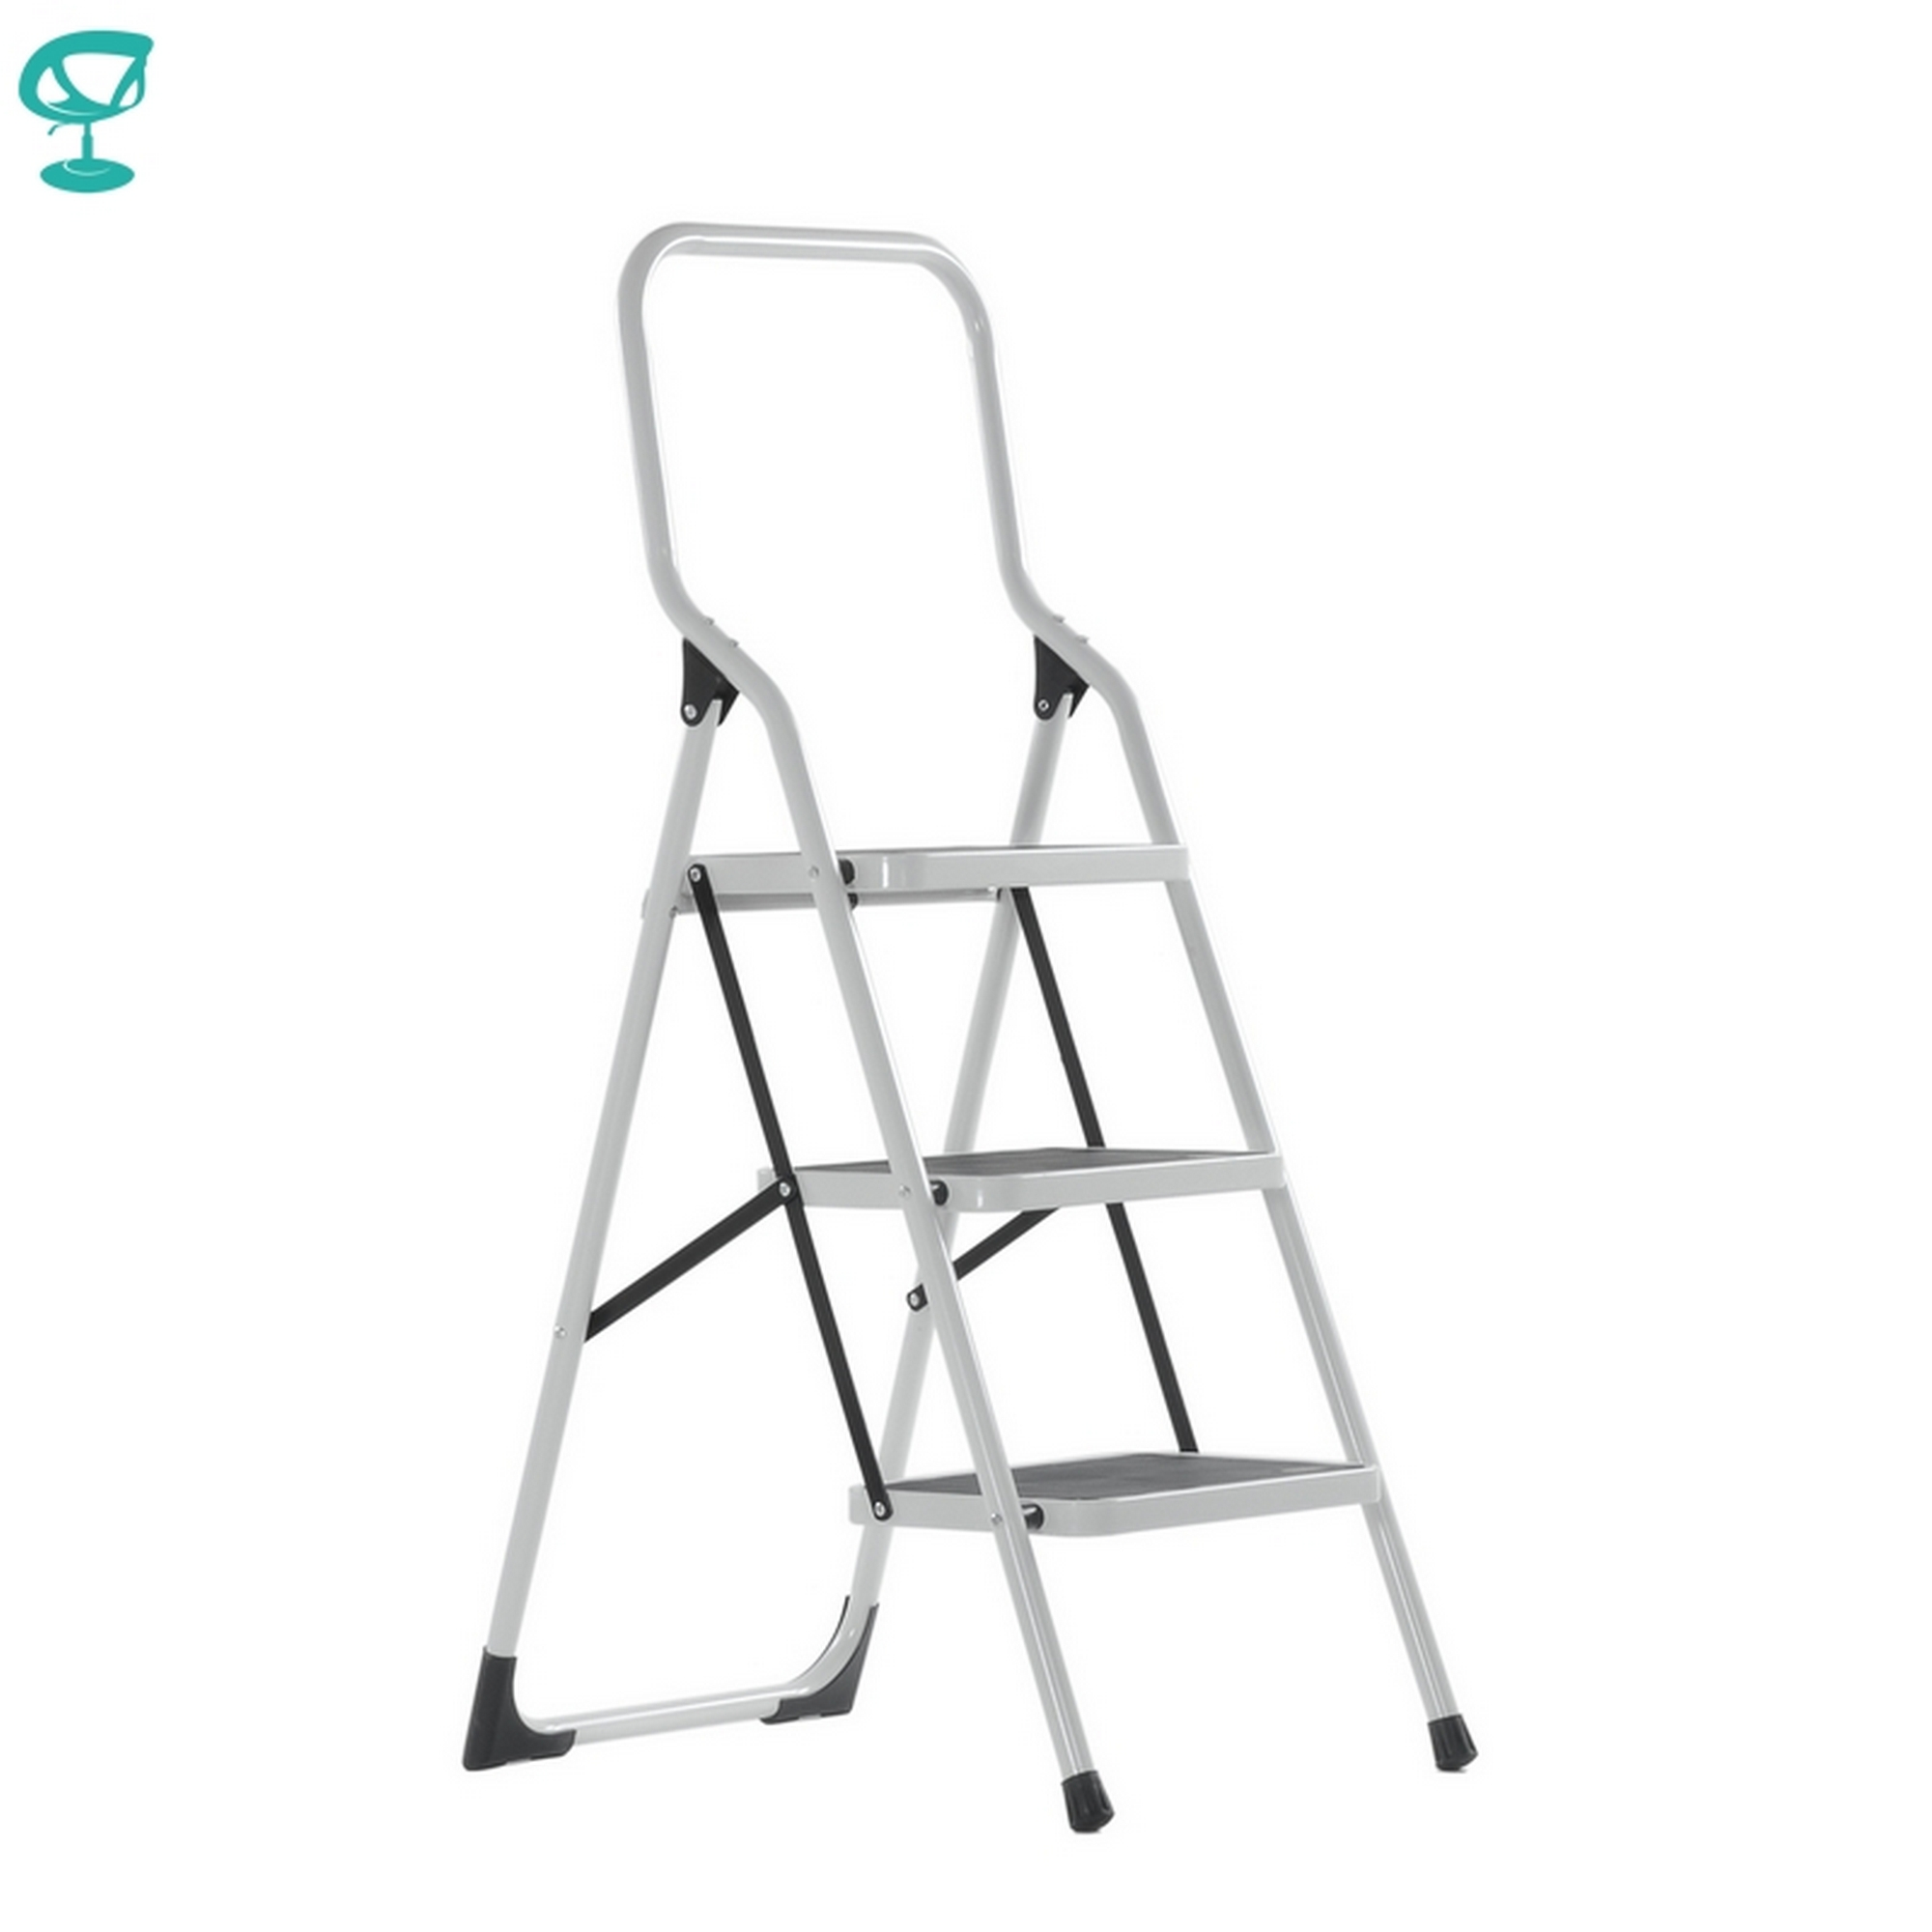 95670 Barneo St-13 Ladder Steel 3 Stage White Single Side Max Load 150 Kg Free Shipping To Russia